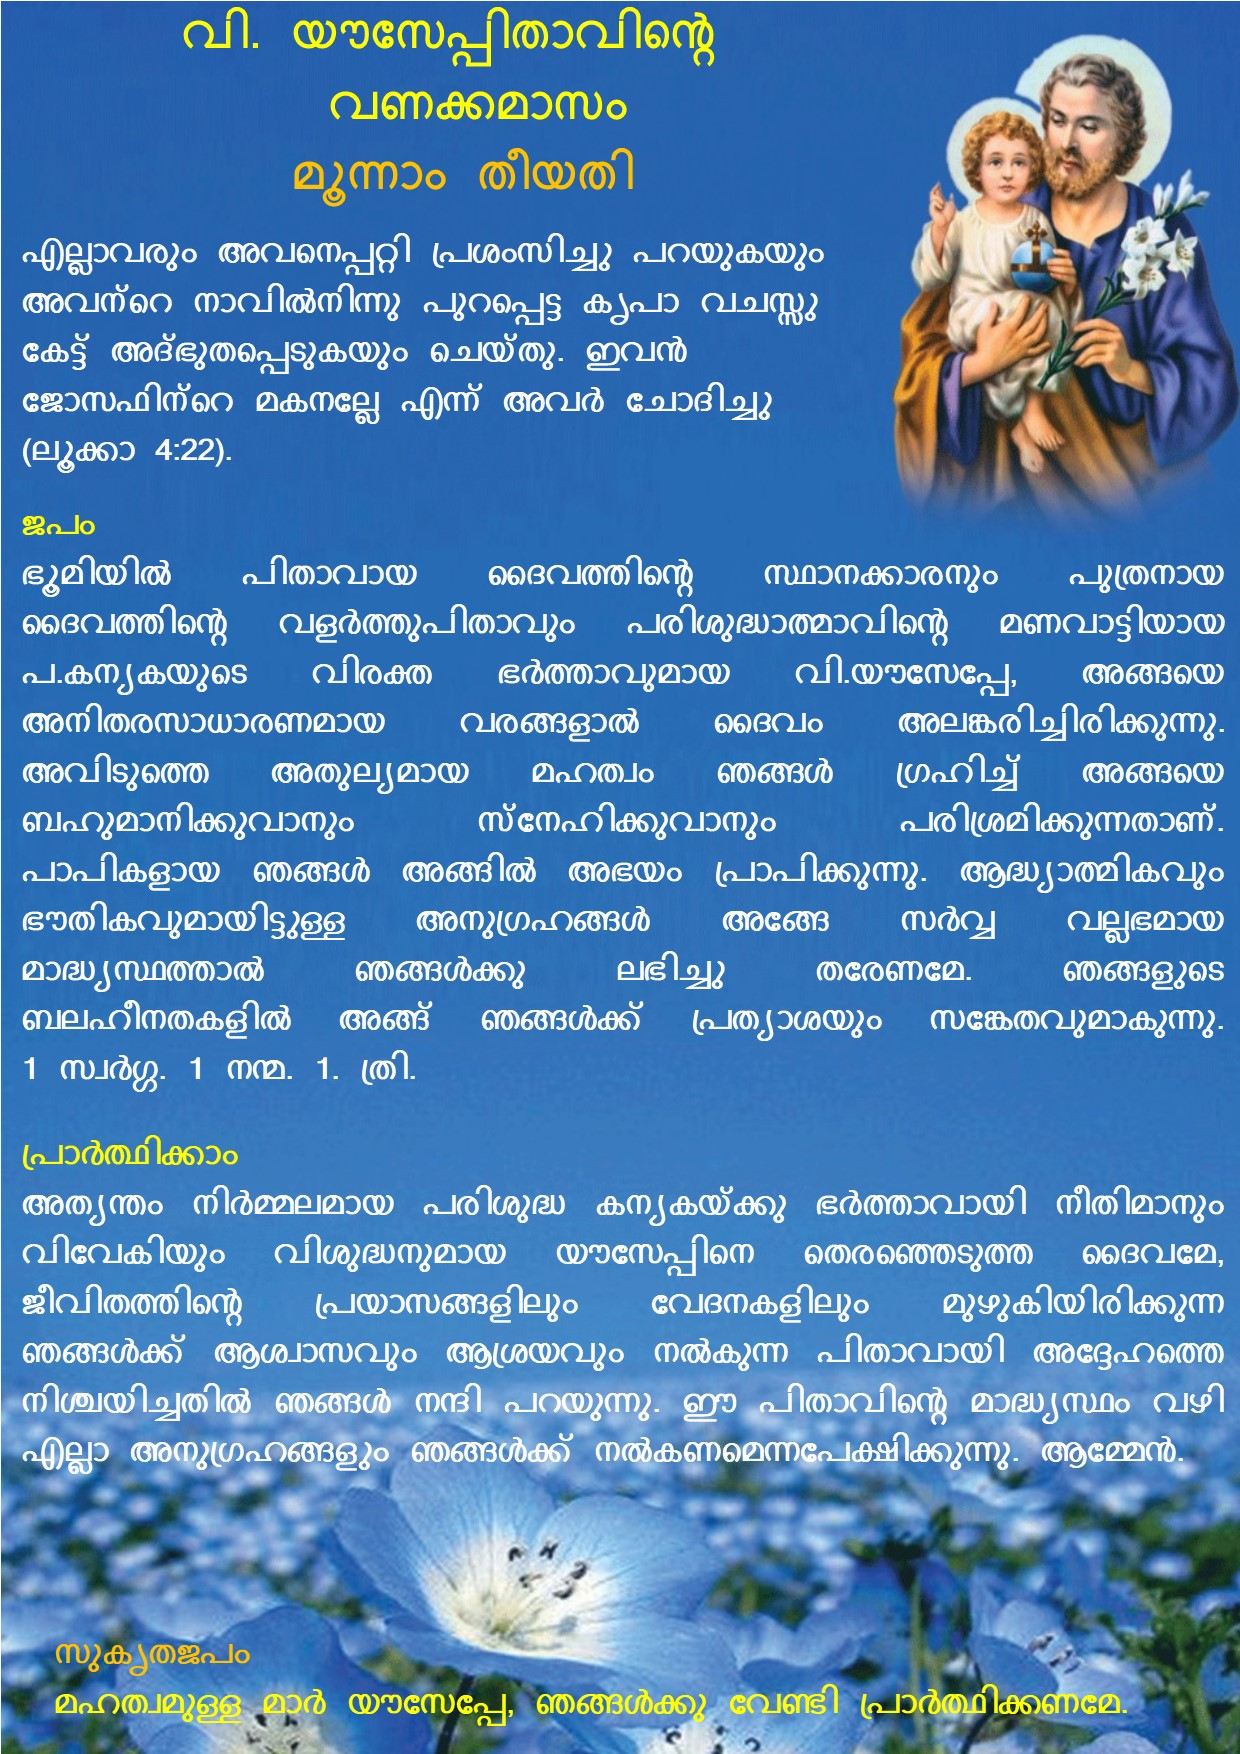 Vanakkamasam, St Joseph, March 03